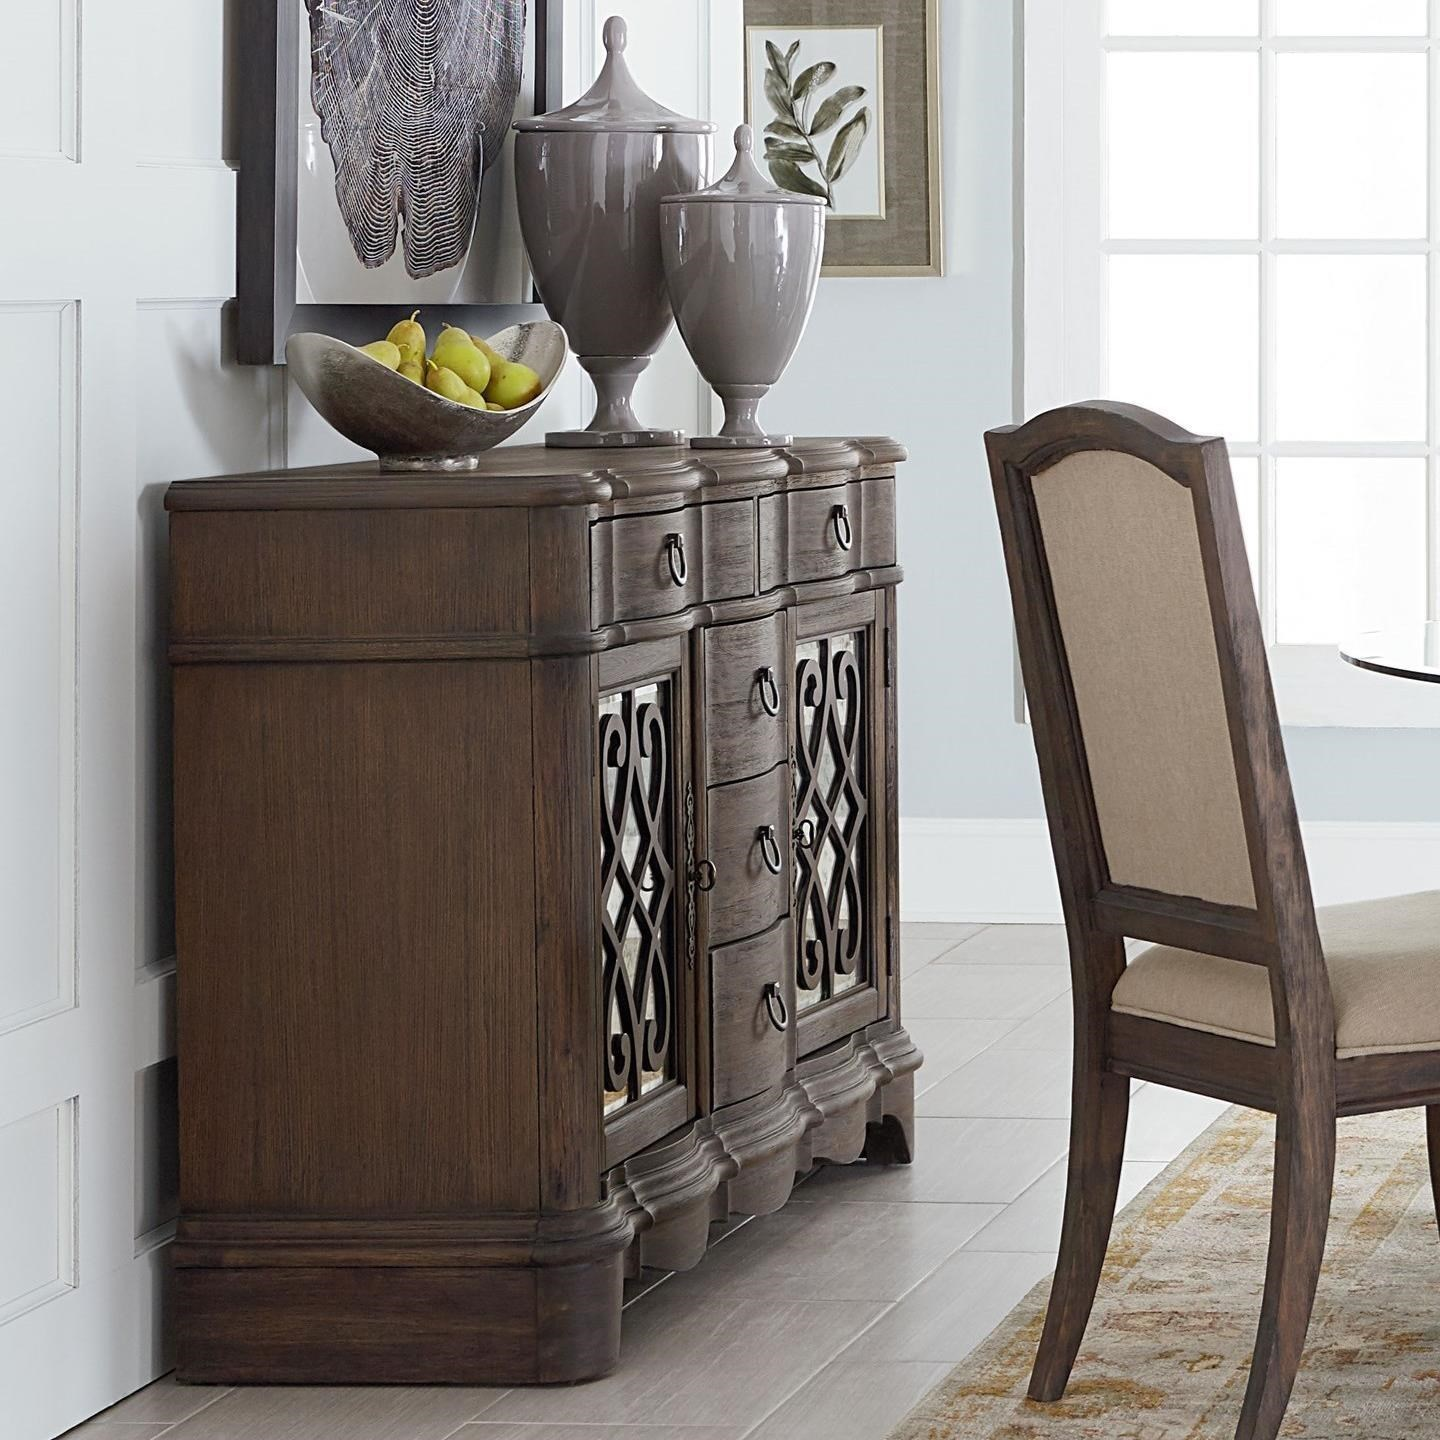 Standard Furniture Parliament Buffet with Fretwork Doors & Standard Furniture Parliament Buffet with Fretwork Doors | Standard ...